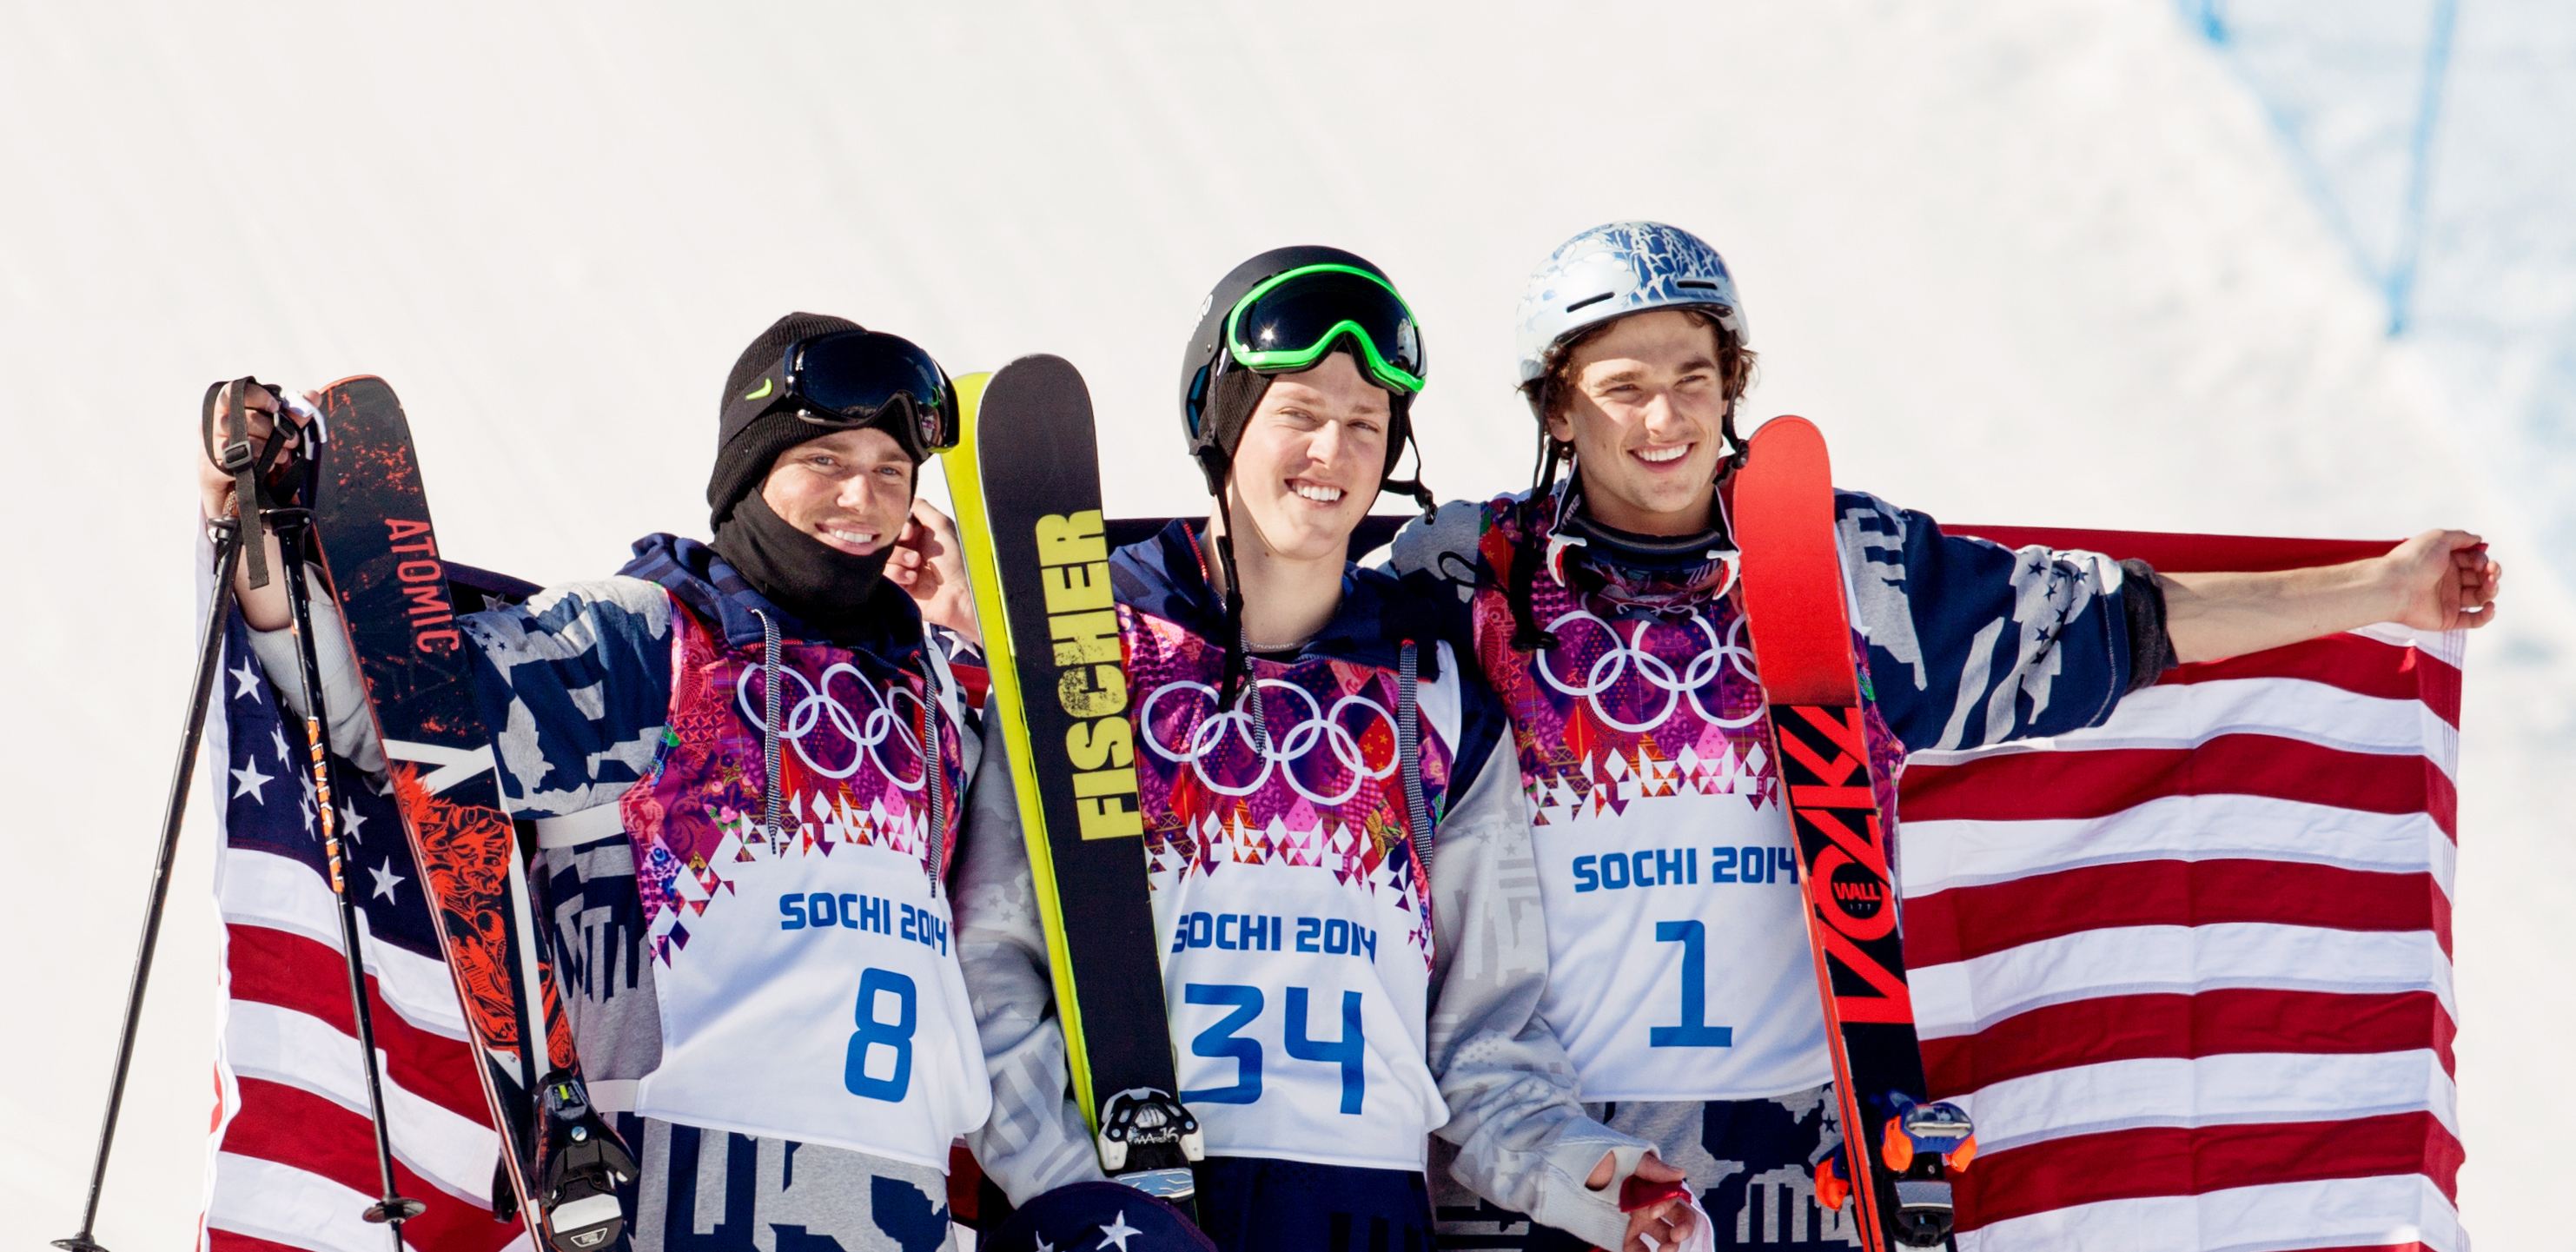 Gus Kenworthy, Joss Christensen and Nick Goepper on the podium in Sochi, Russia.